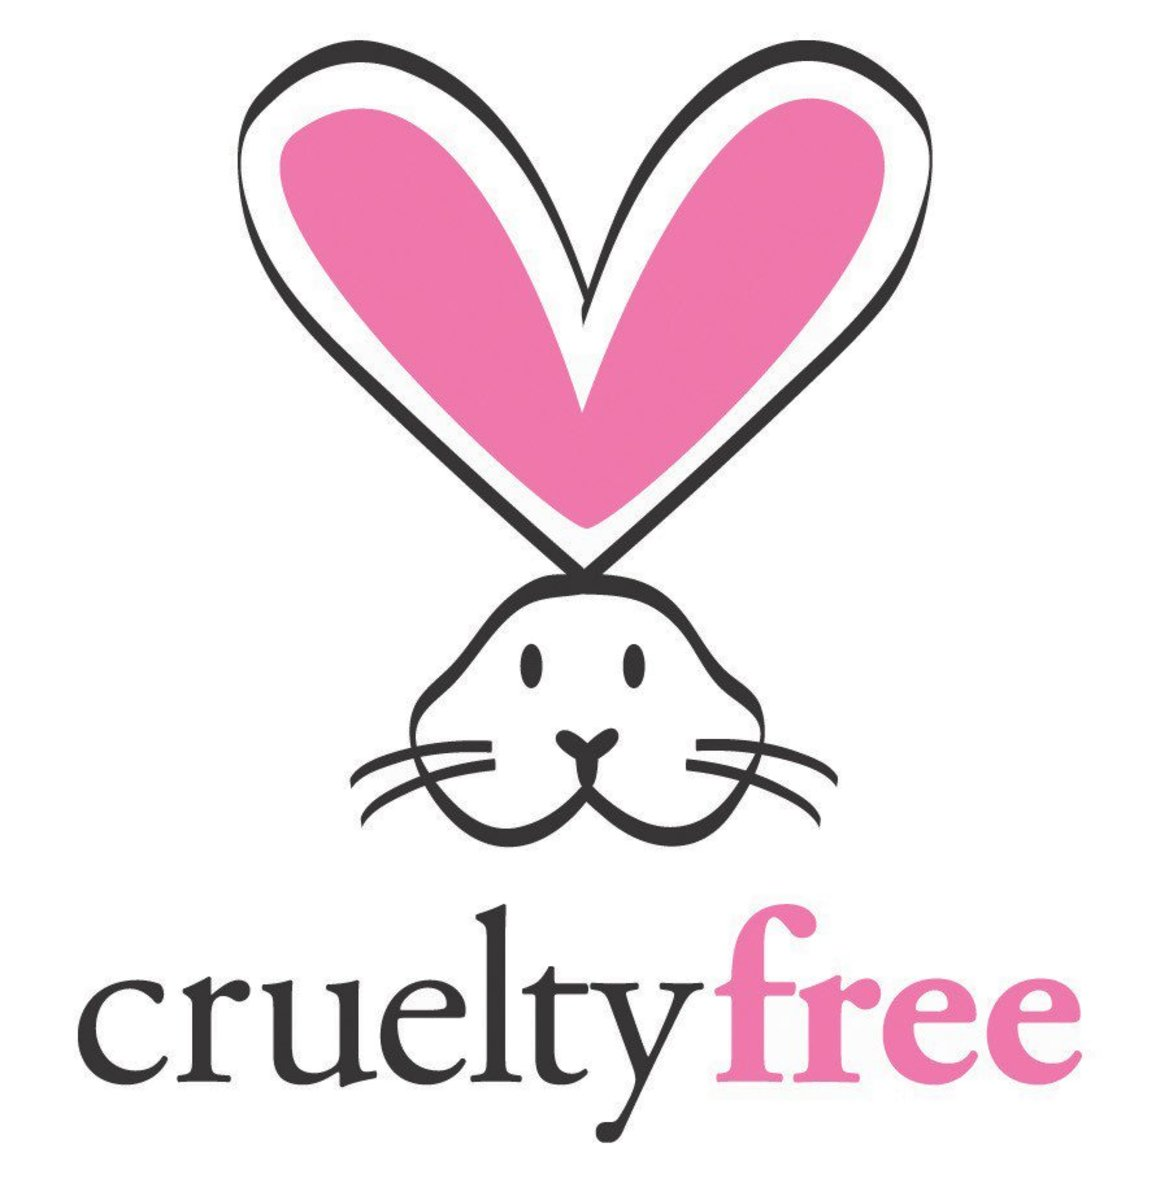 A Complete List of Cruelty-Free Cosmetic Brands